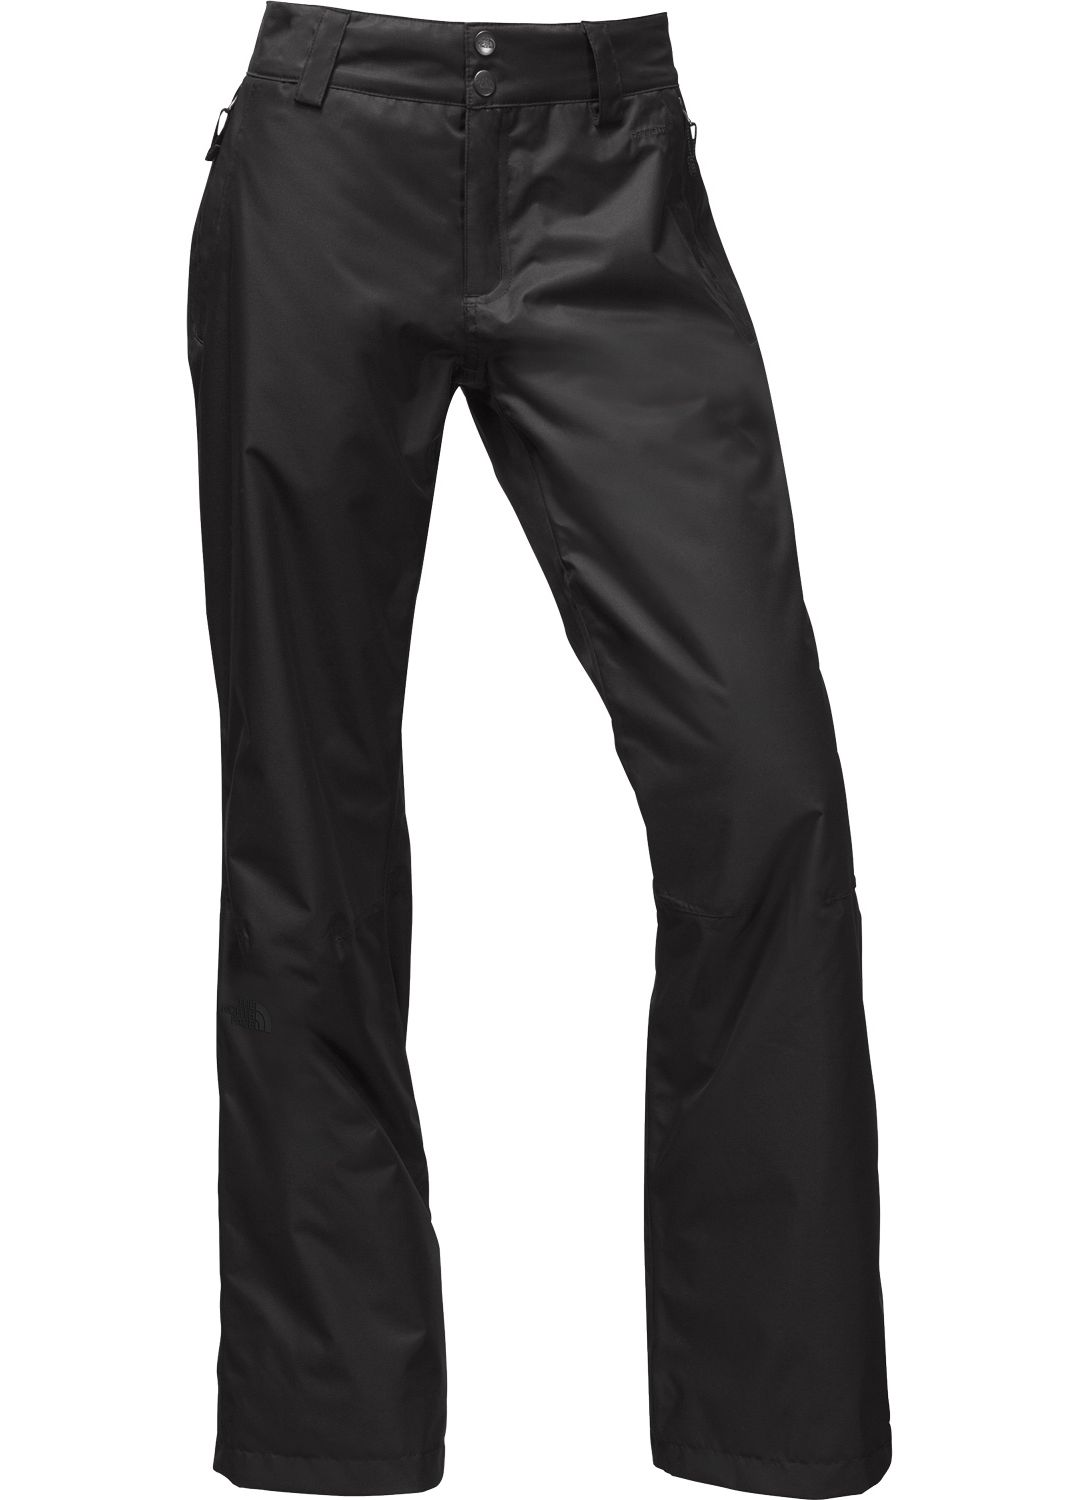 a12cd11e3 The North Face Women's Sally Pants